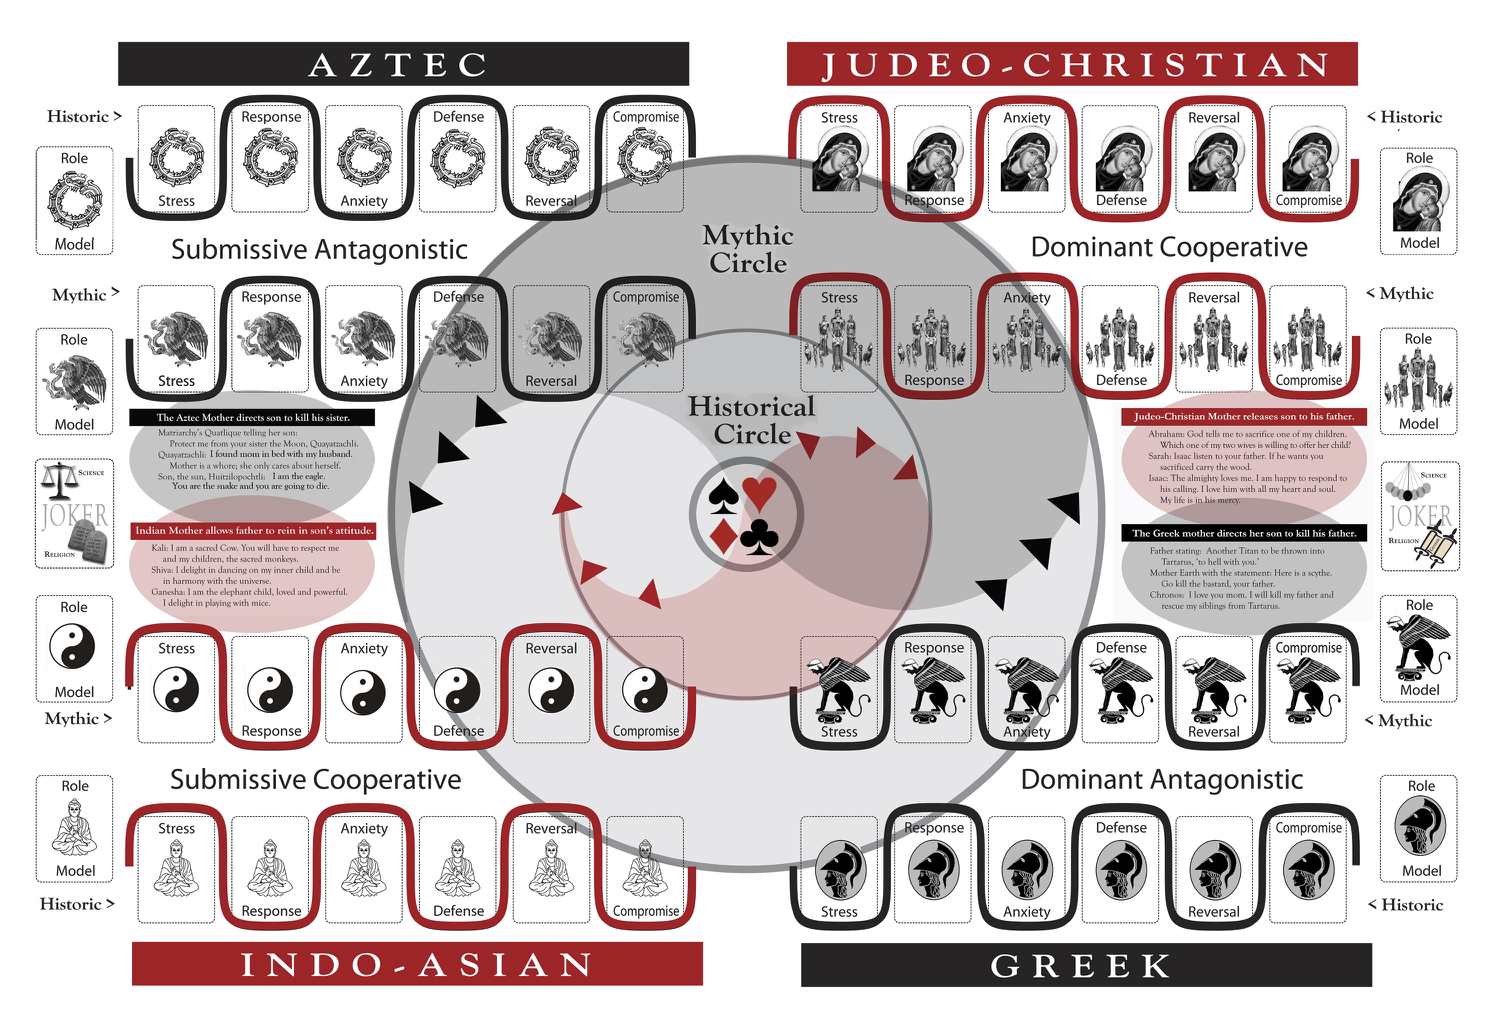 Moral Monopoly Game - Learn about cultural models of conflict resoloution through playing an interactive board game